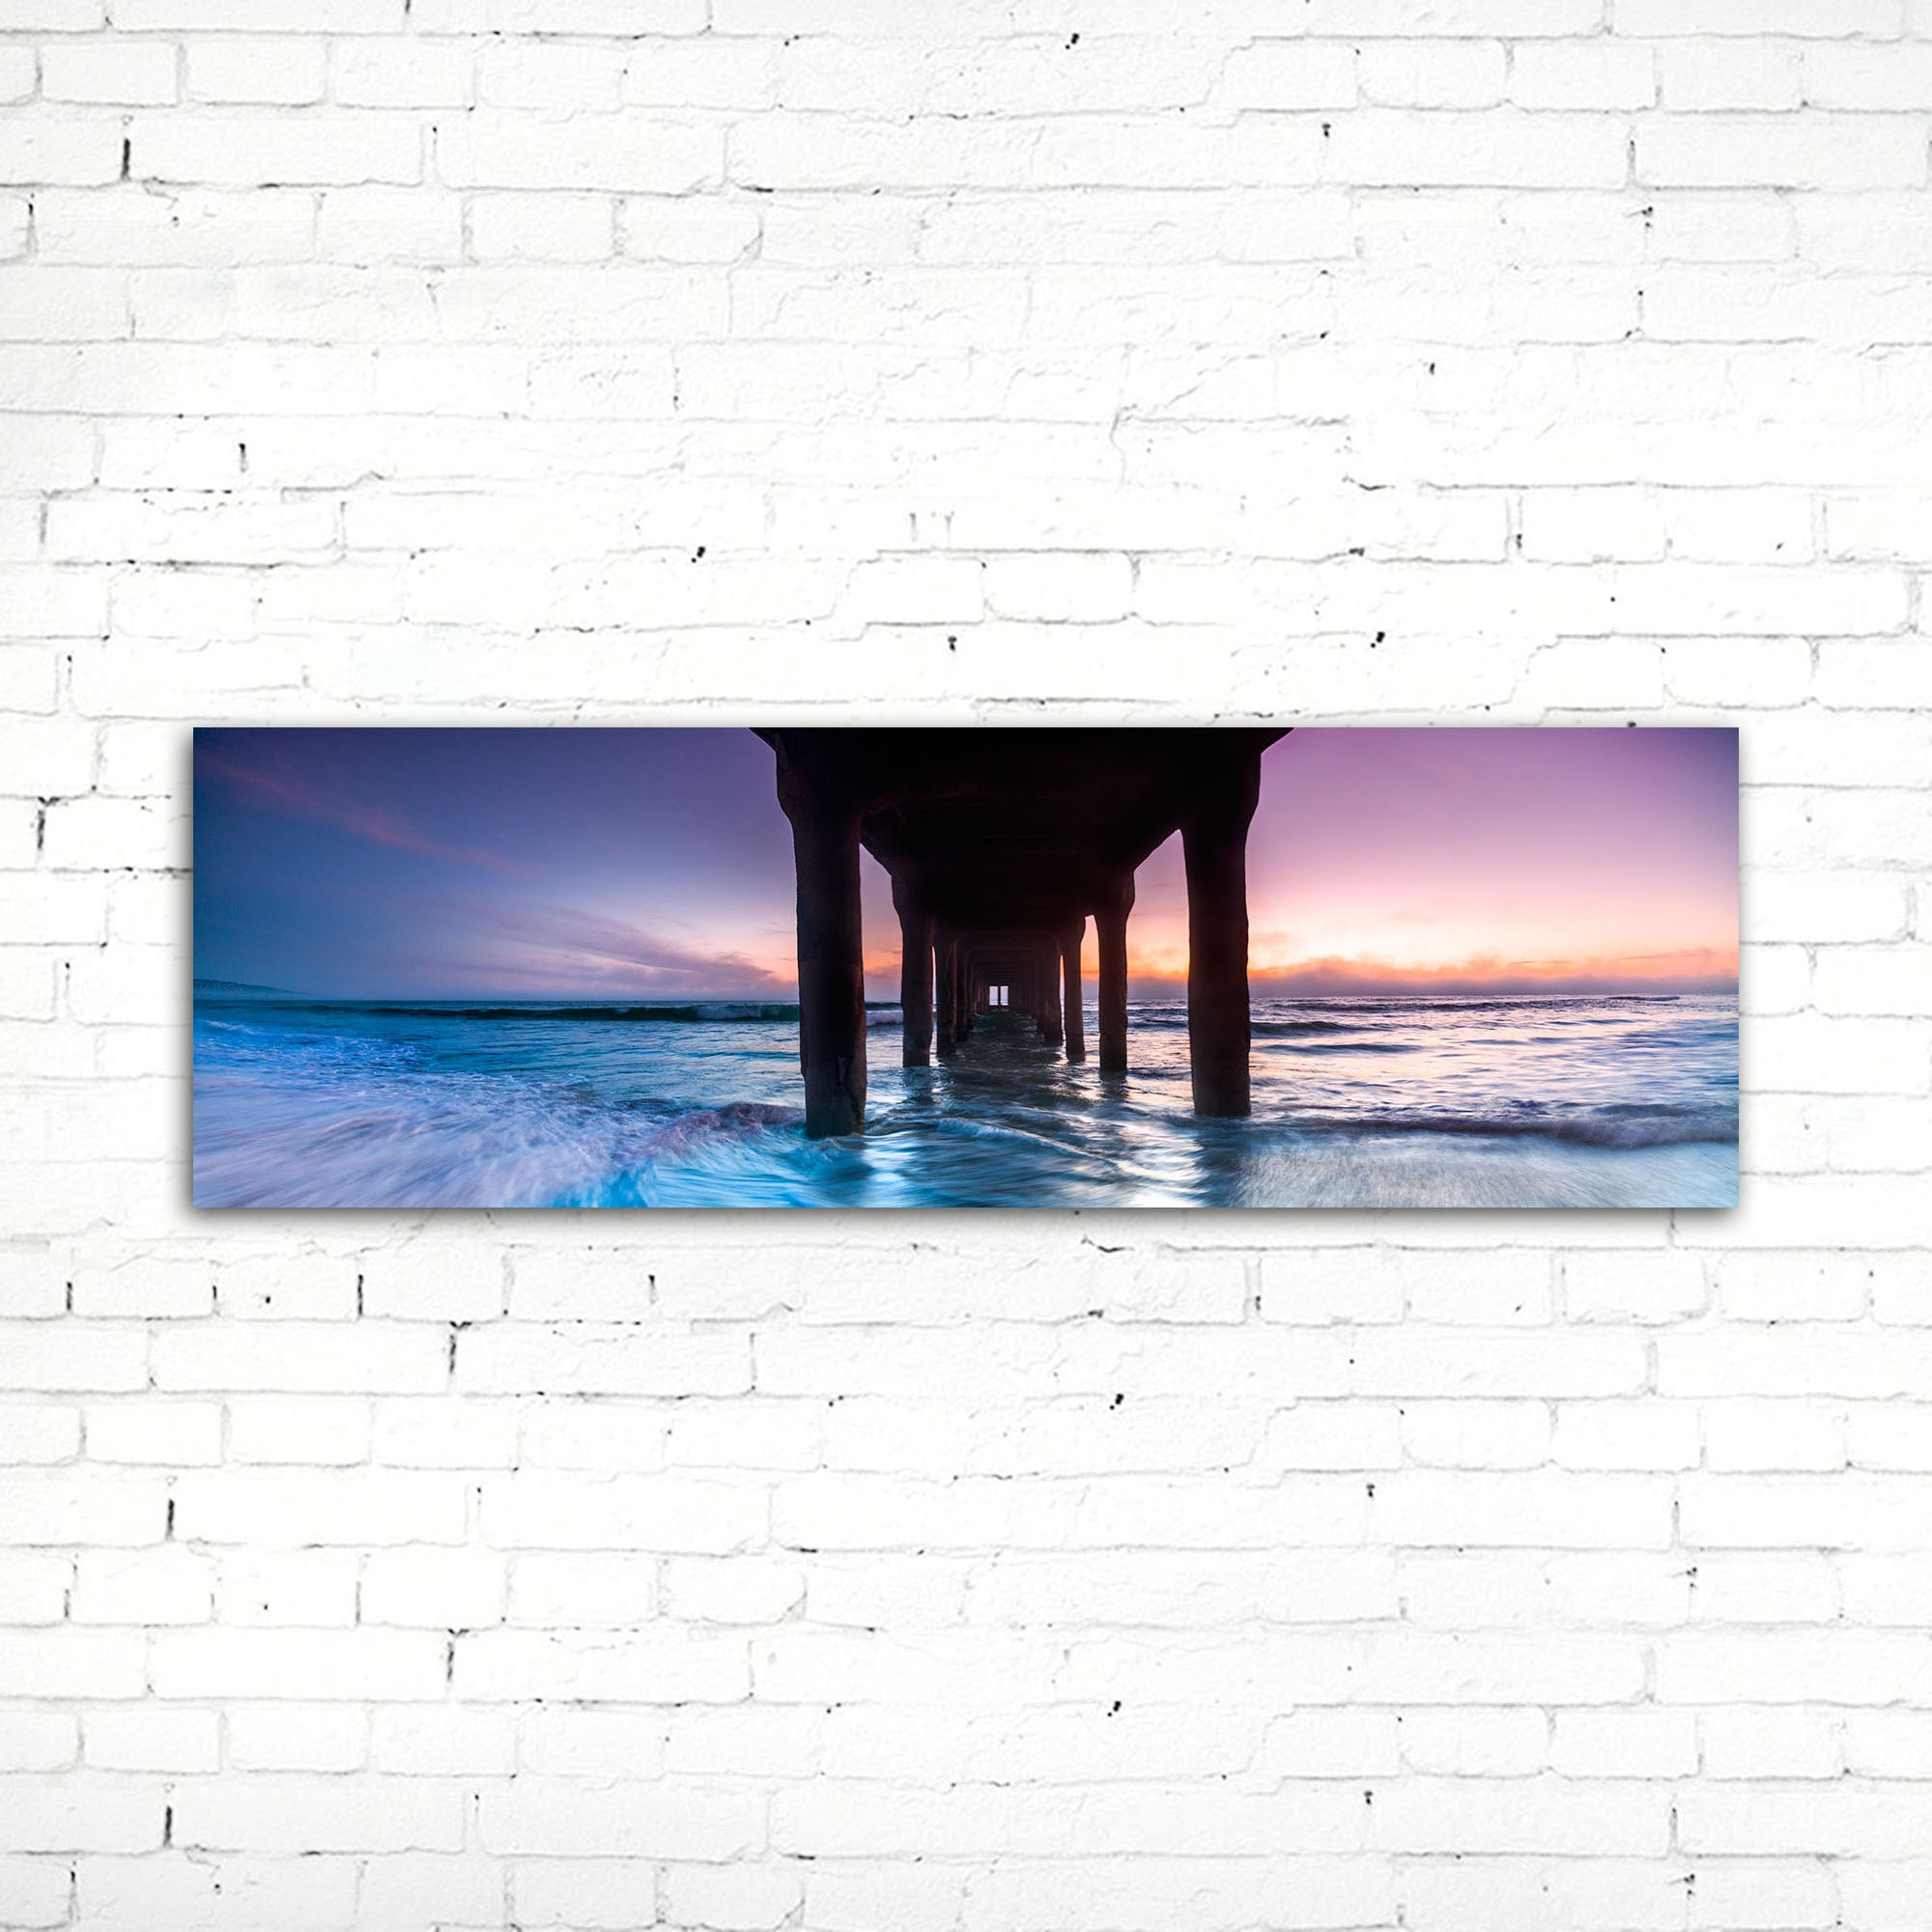 75% OFF Manhattan Beach Pier Photographic Canvas Print